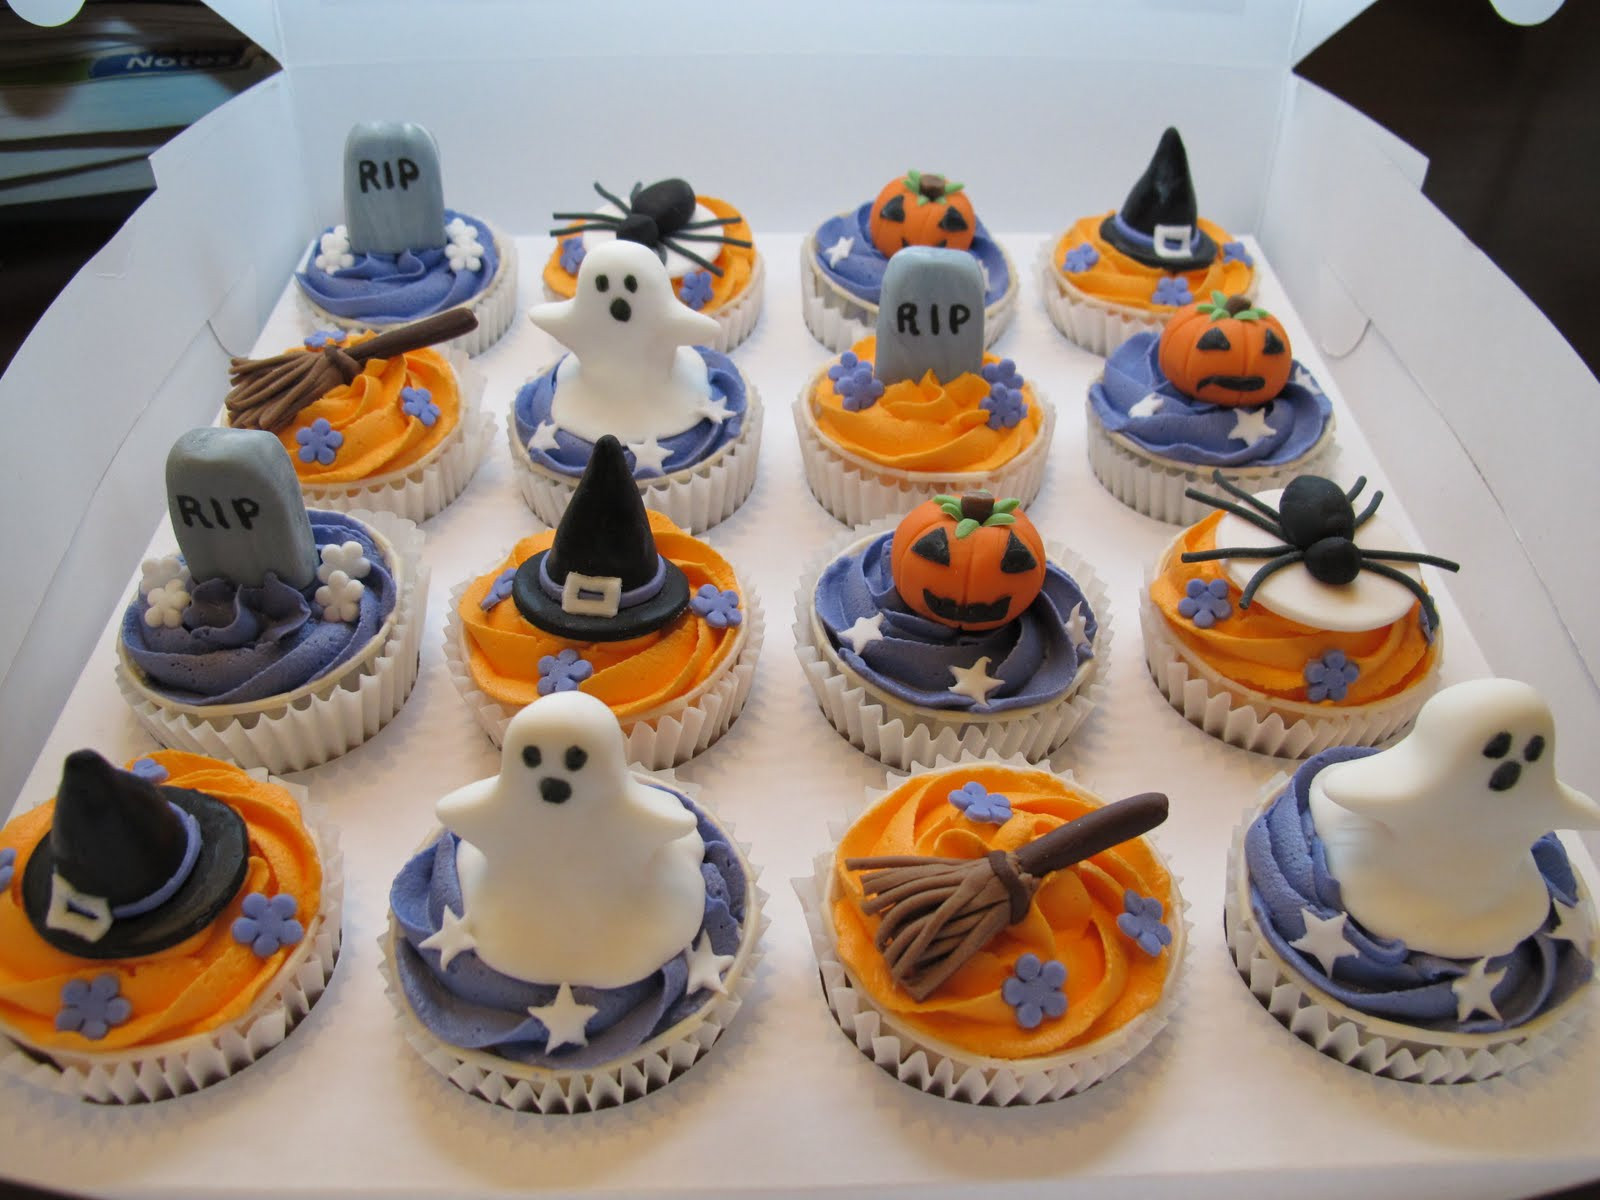 Halloween Cupcakes Decorating Ideas  Pink Oven Cakes and Cookies Halloween cupcake ideas